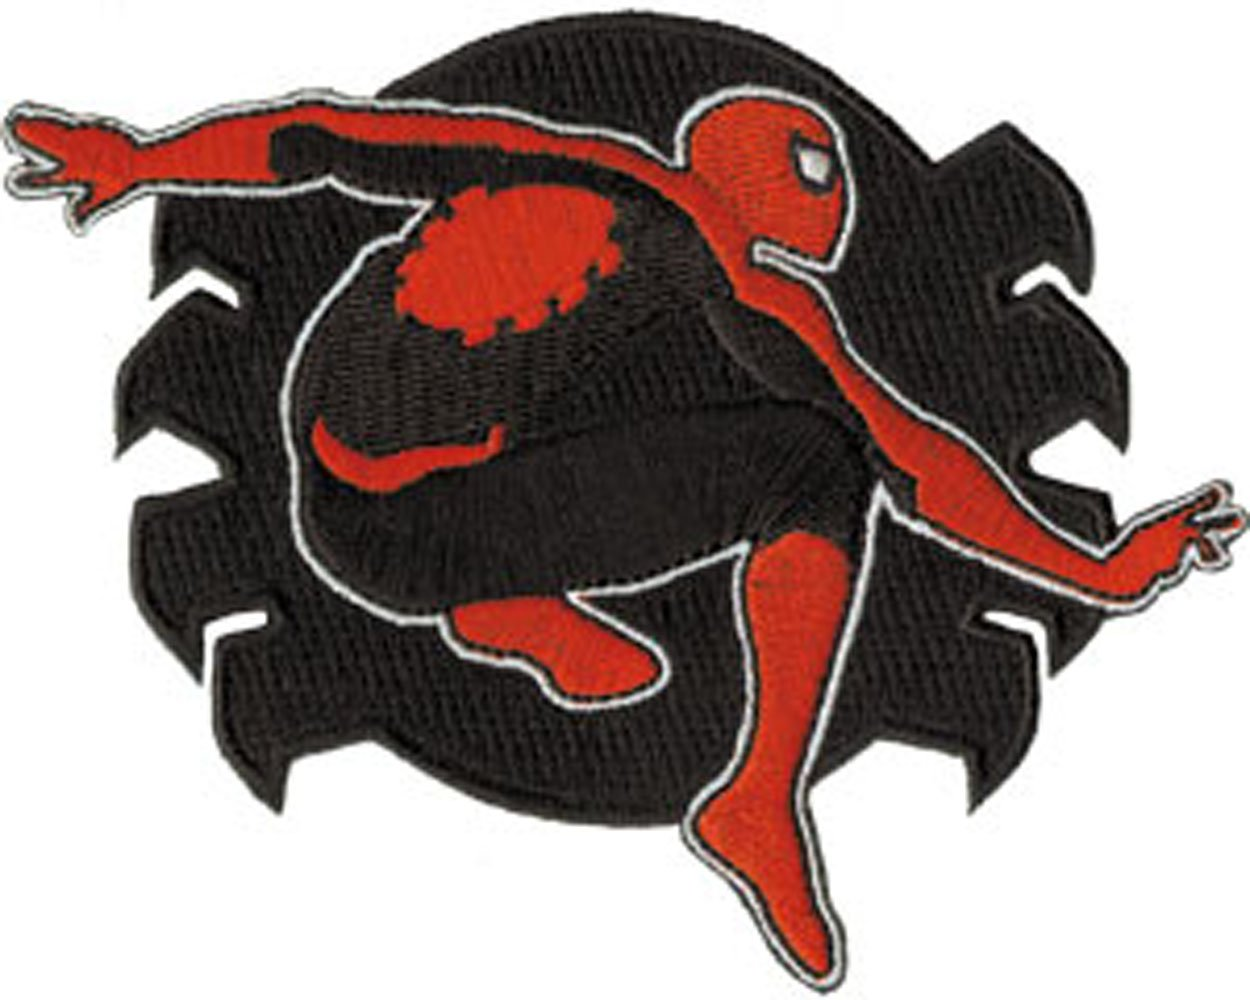 SPIDERMAN Application Spidey Icon PATCH, Officially Licensed Marvel Comics Superhero Artwork, Iron-On / Sew-On, 3.2